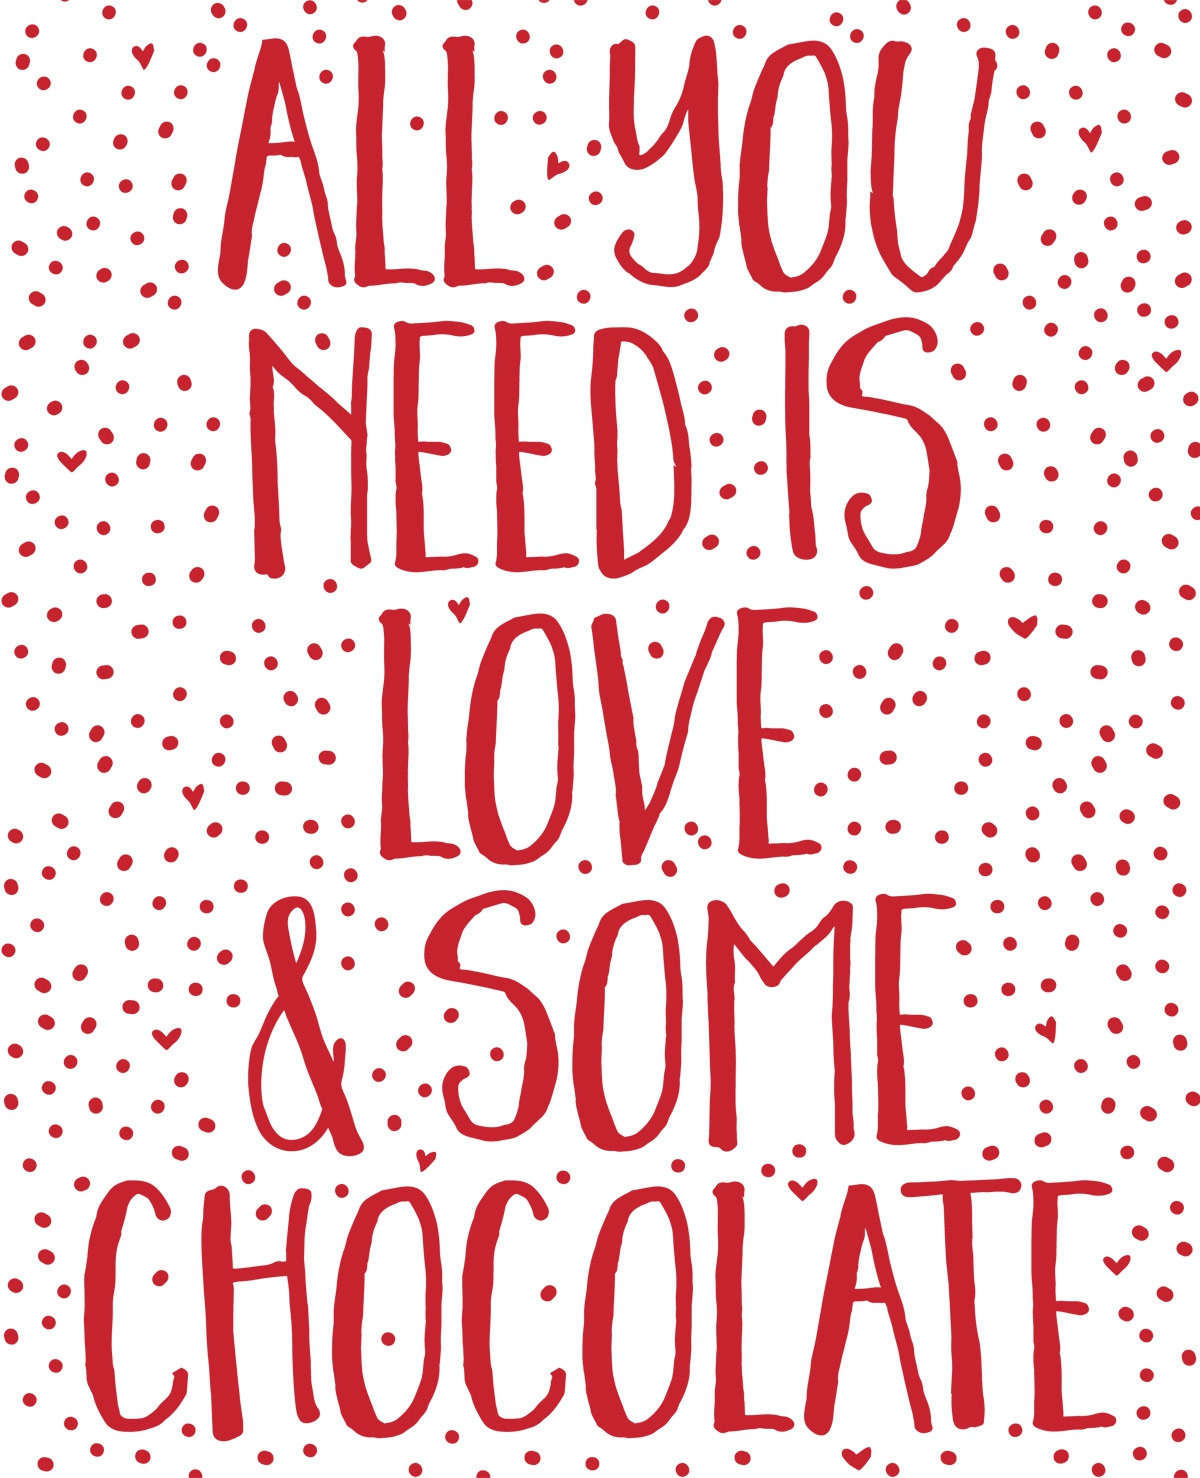 All you need is love & some chocolate